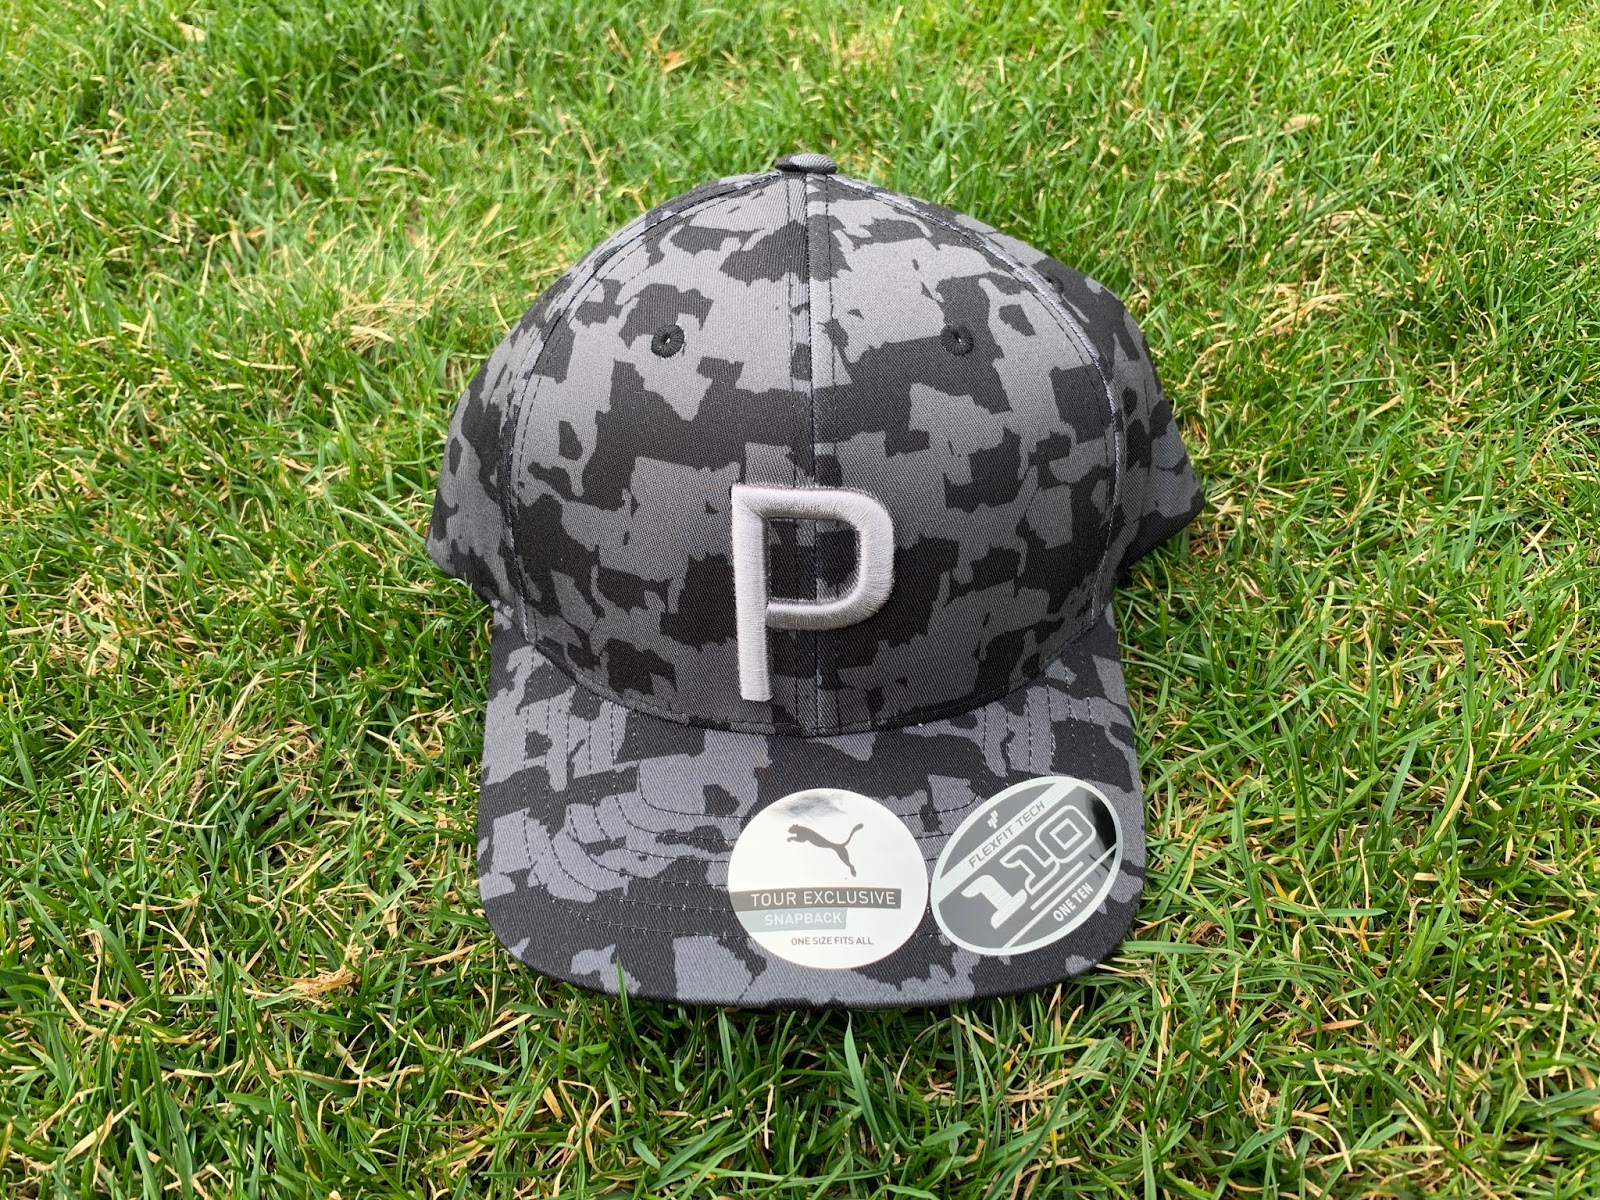 506c0fdfbfa You can also enter on twitter when you see my Masters PUMA Masters Union  Camo P Cap giveaway tweet. Be sure you re following me and PUMA